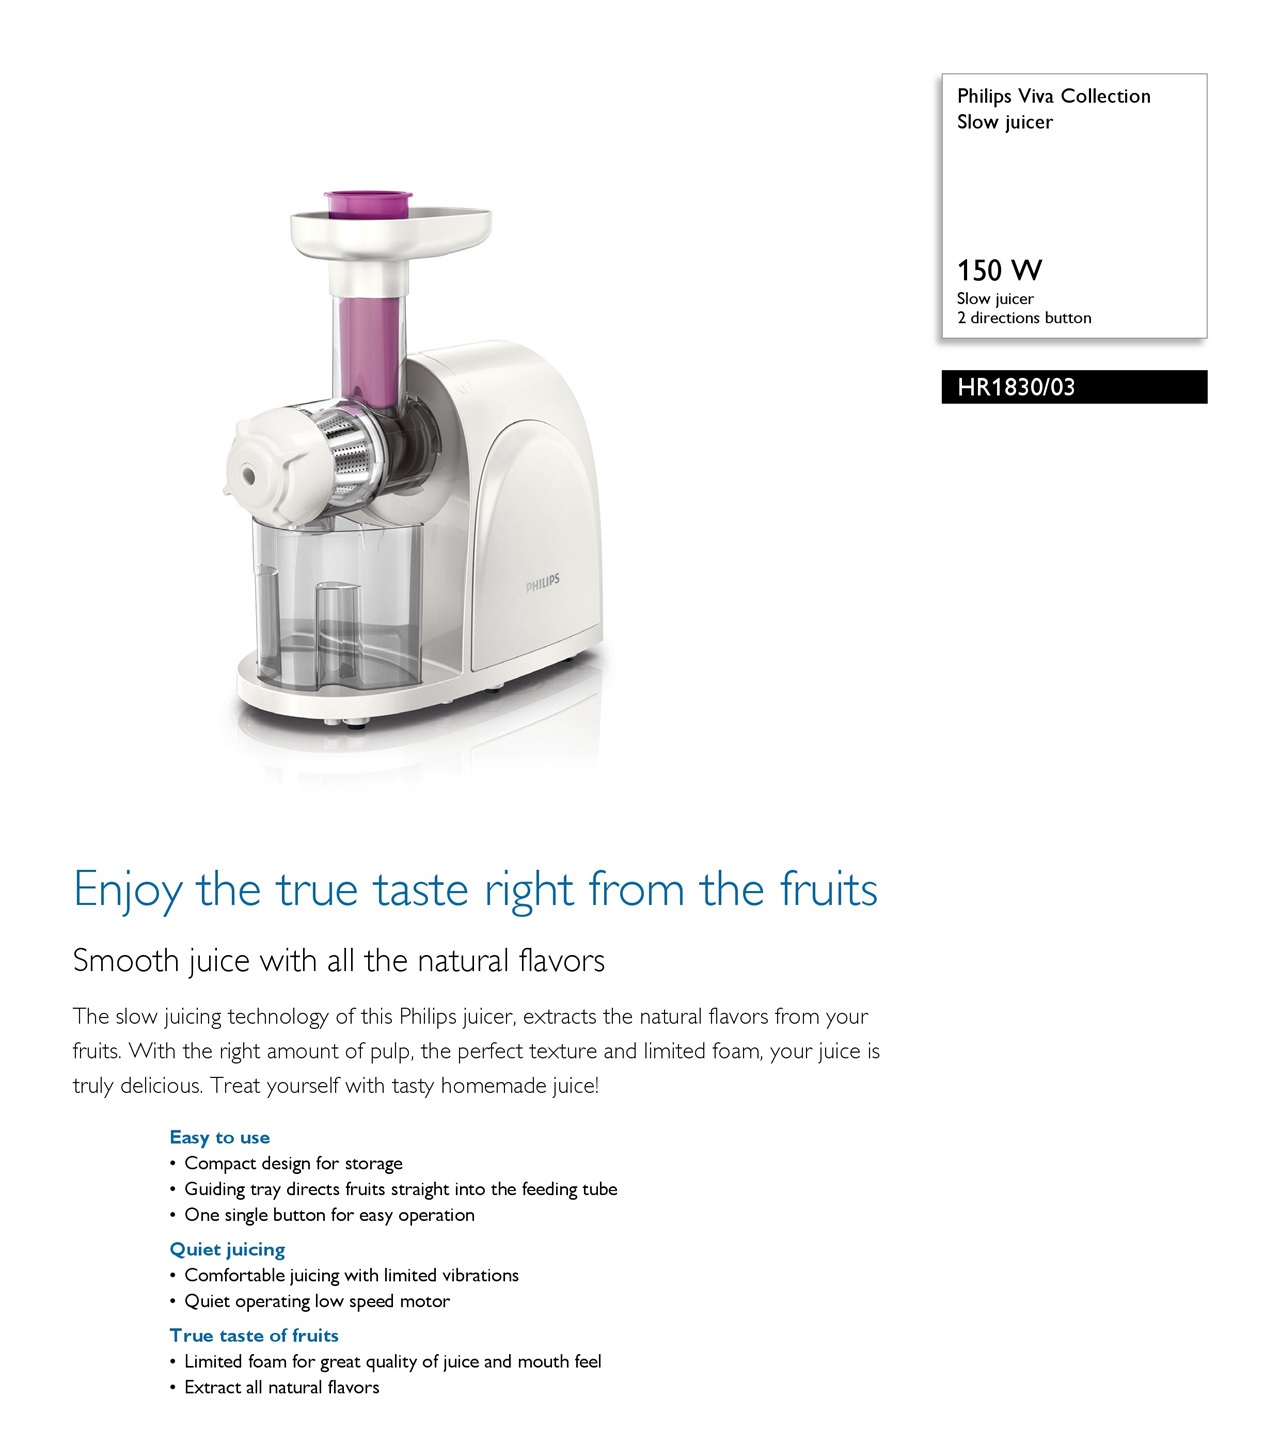 Philips Slow Juicer 1830 : ET SOUND ENTERPRISE PTE LTD. Philips viva Collection Slow Juicer HR1830